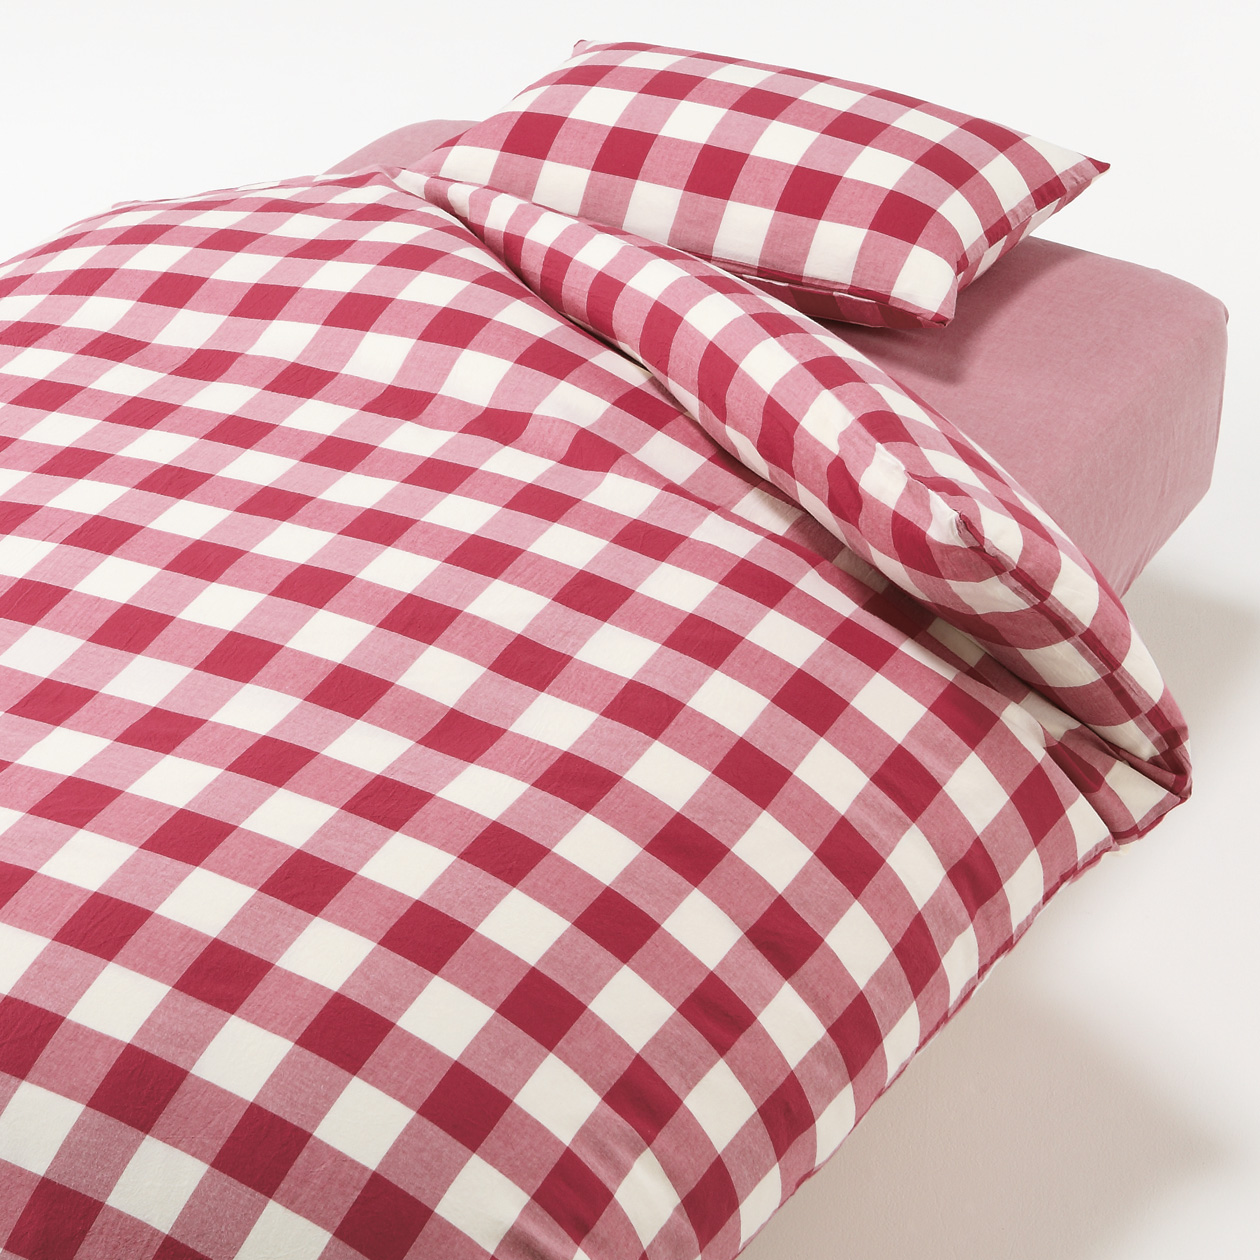 COVER SET FOR BED S RED CHECK